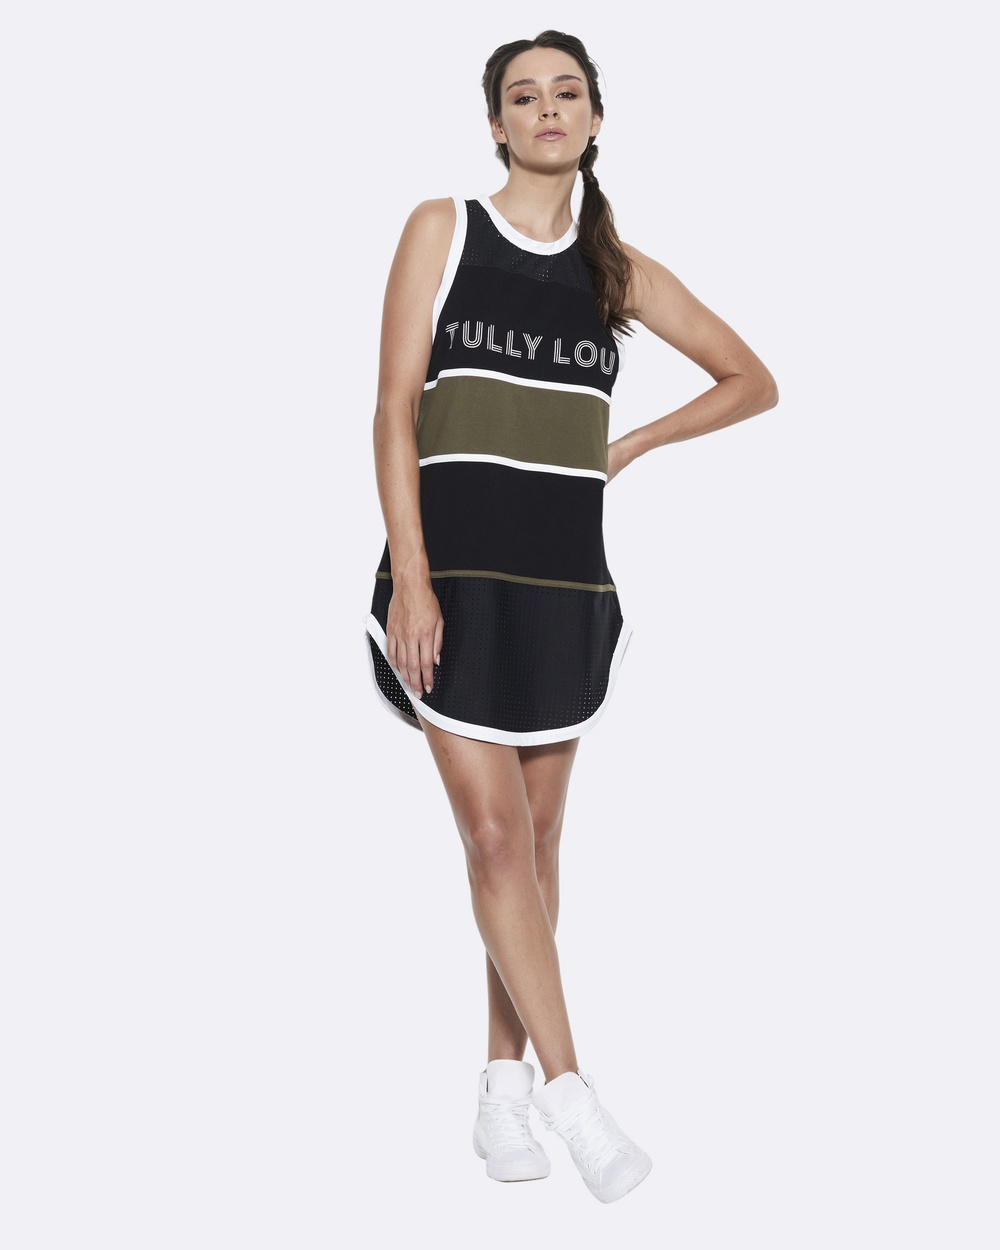 Tully Lou 76er's Dress Dresses Army 76er's Dress